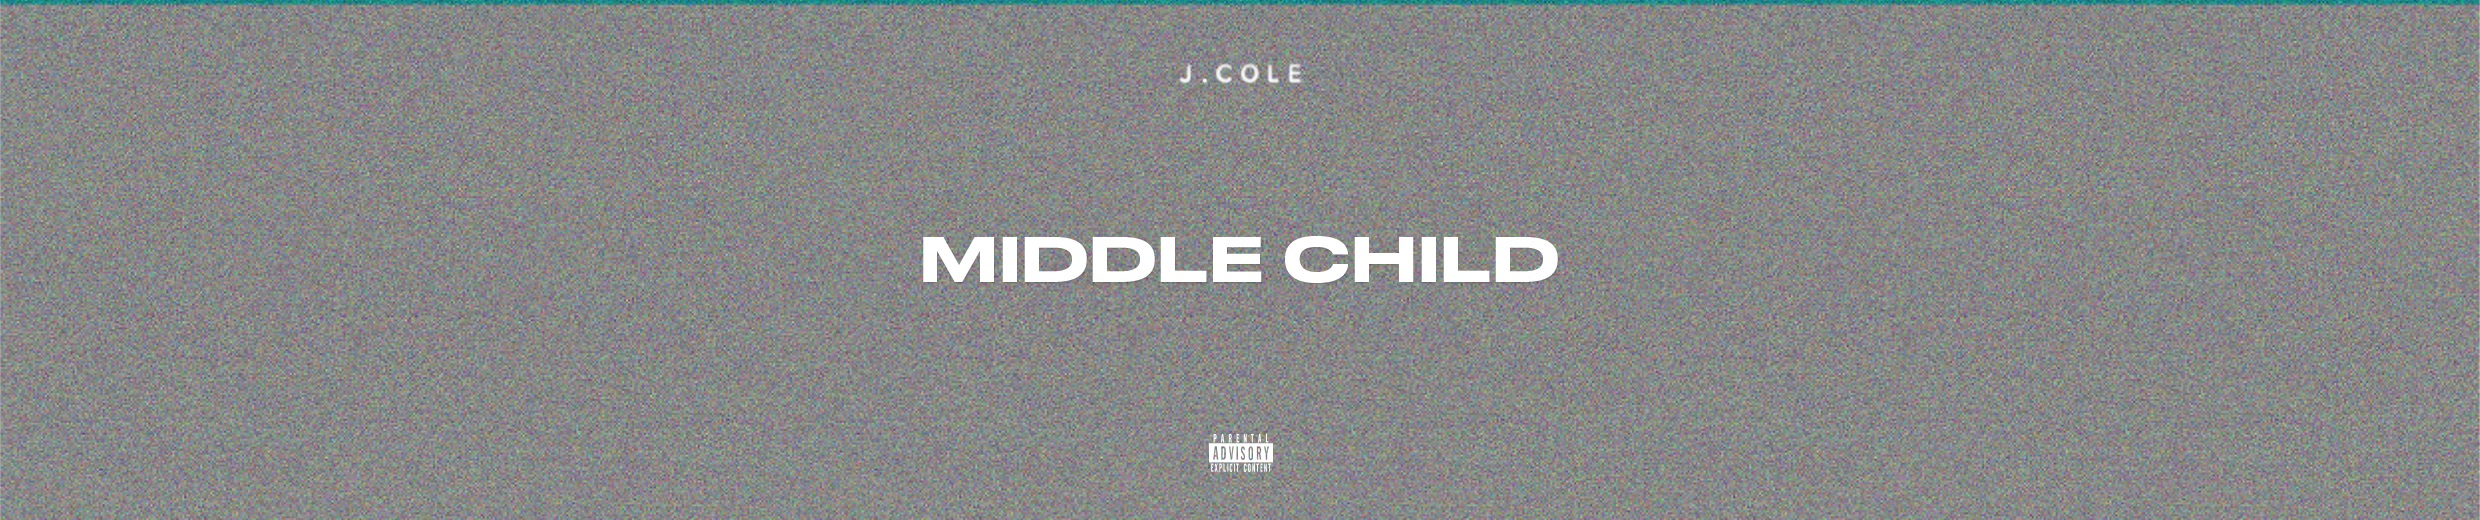 reason middle child freestyle download